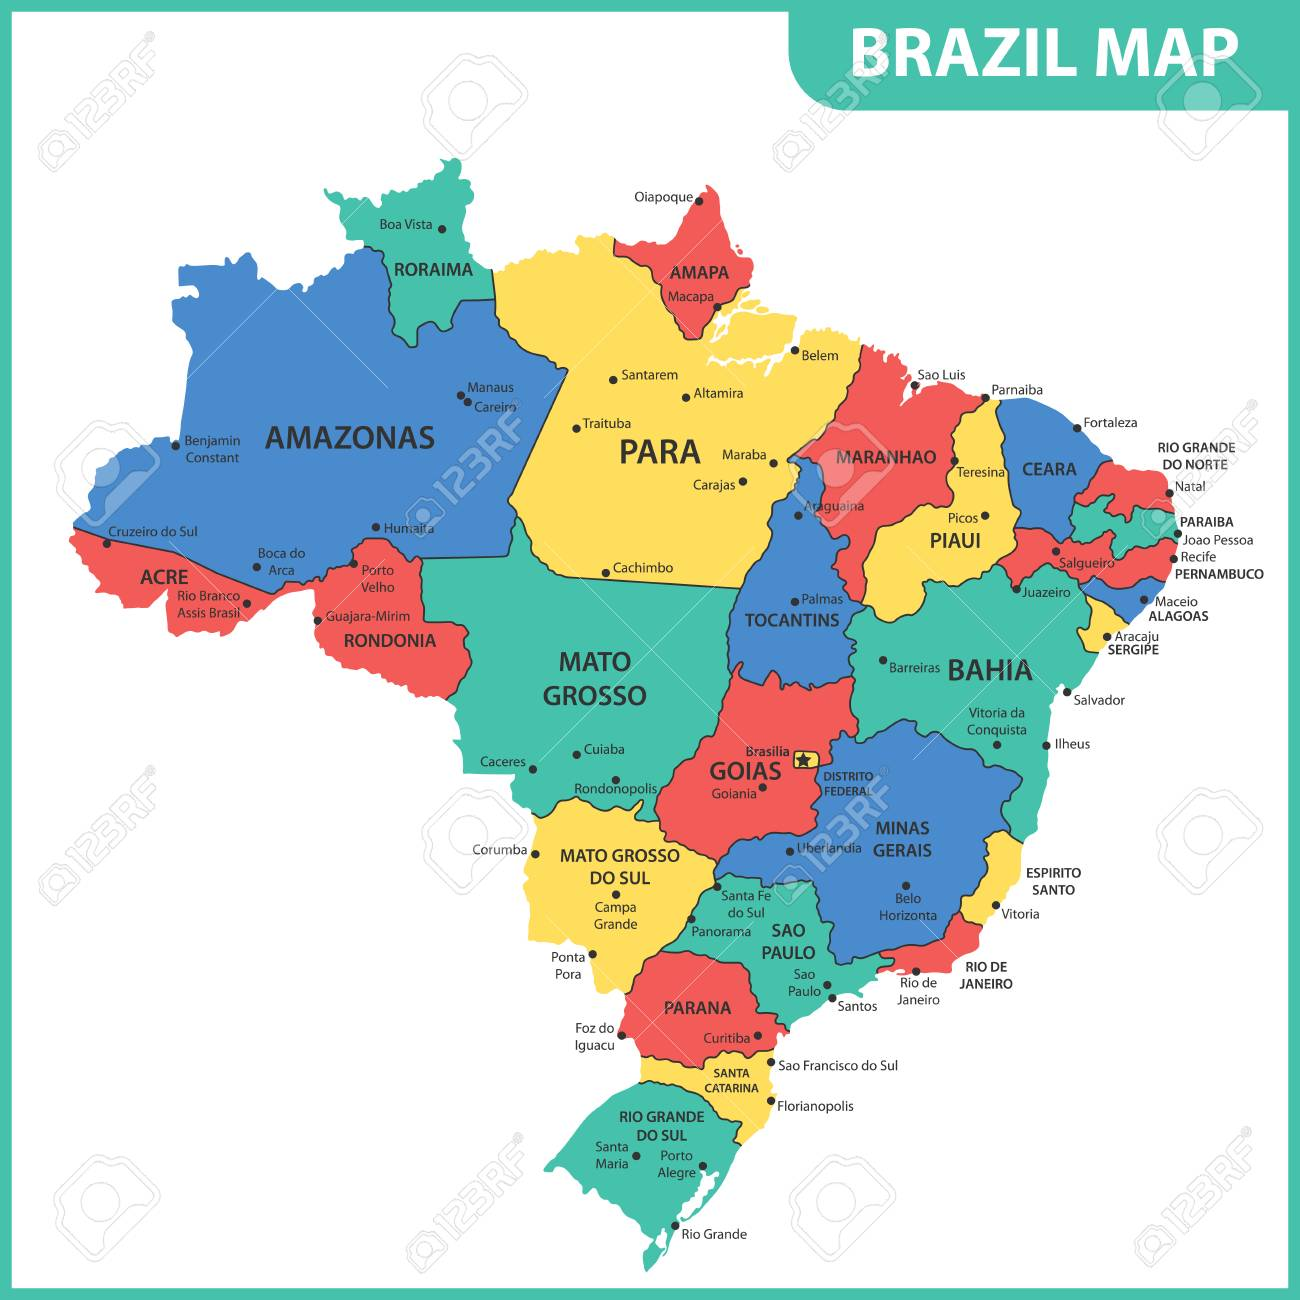 Brazil States Map The Detailed Map Of The Brazil With Regions Or States And Cities